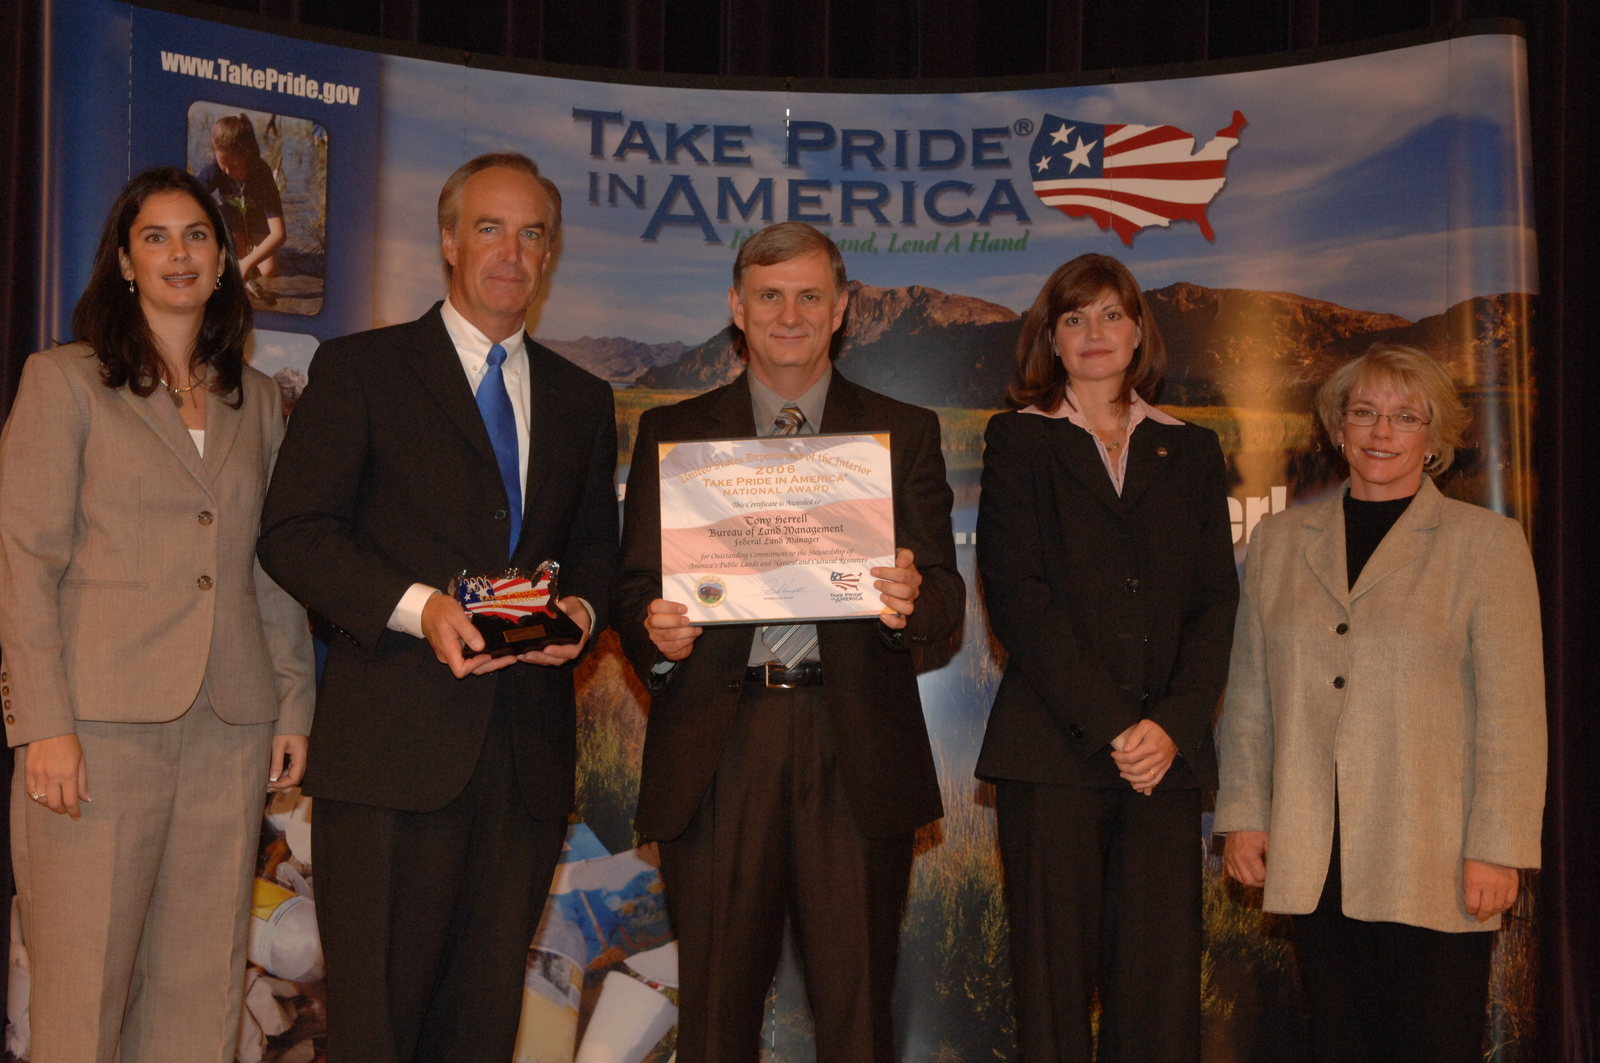 [Assignment: 48-DPA-K_TPIA_9-14-06] 2006 Take Pride in America National Awards event at Main Interior, [with Secretary Dirk Kempthorne among the senior officials on hand] [48-DPA-K_TPIA_9-14-06_DOI_5155.JPG]